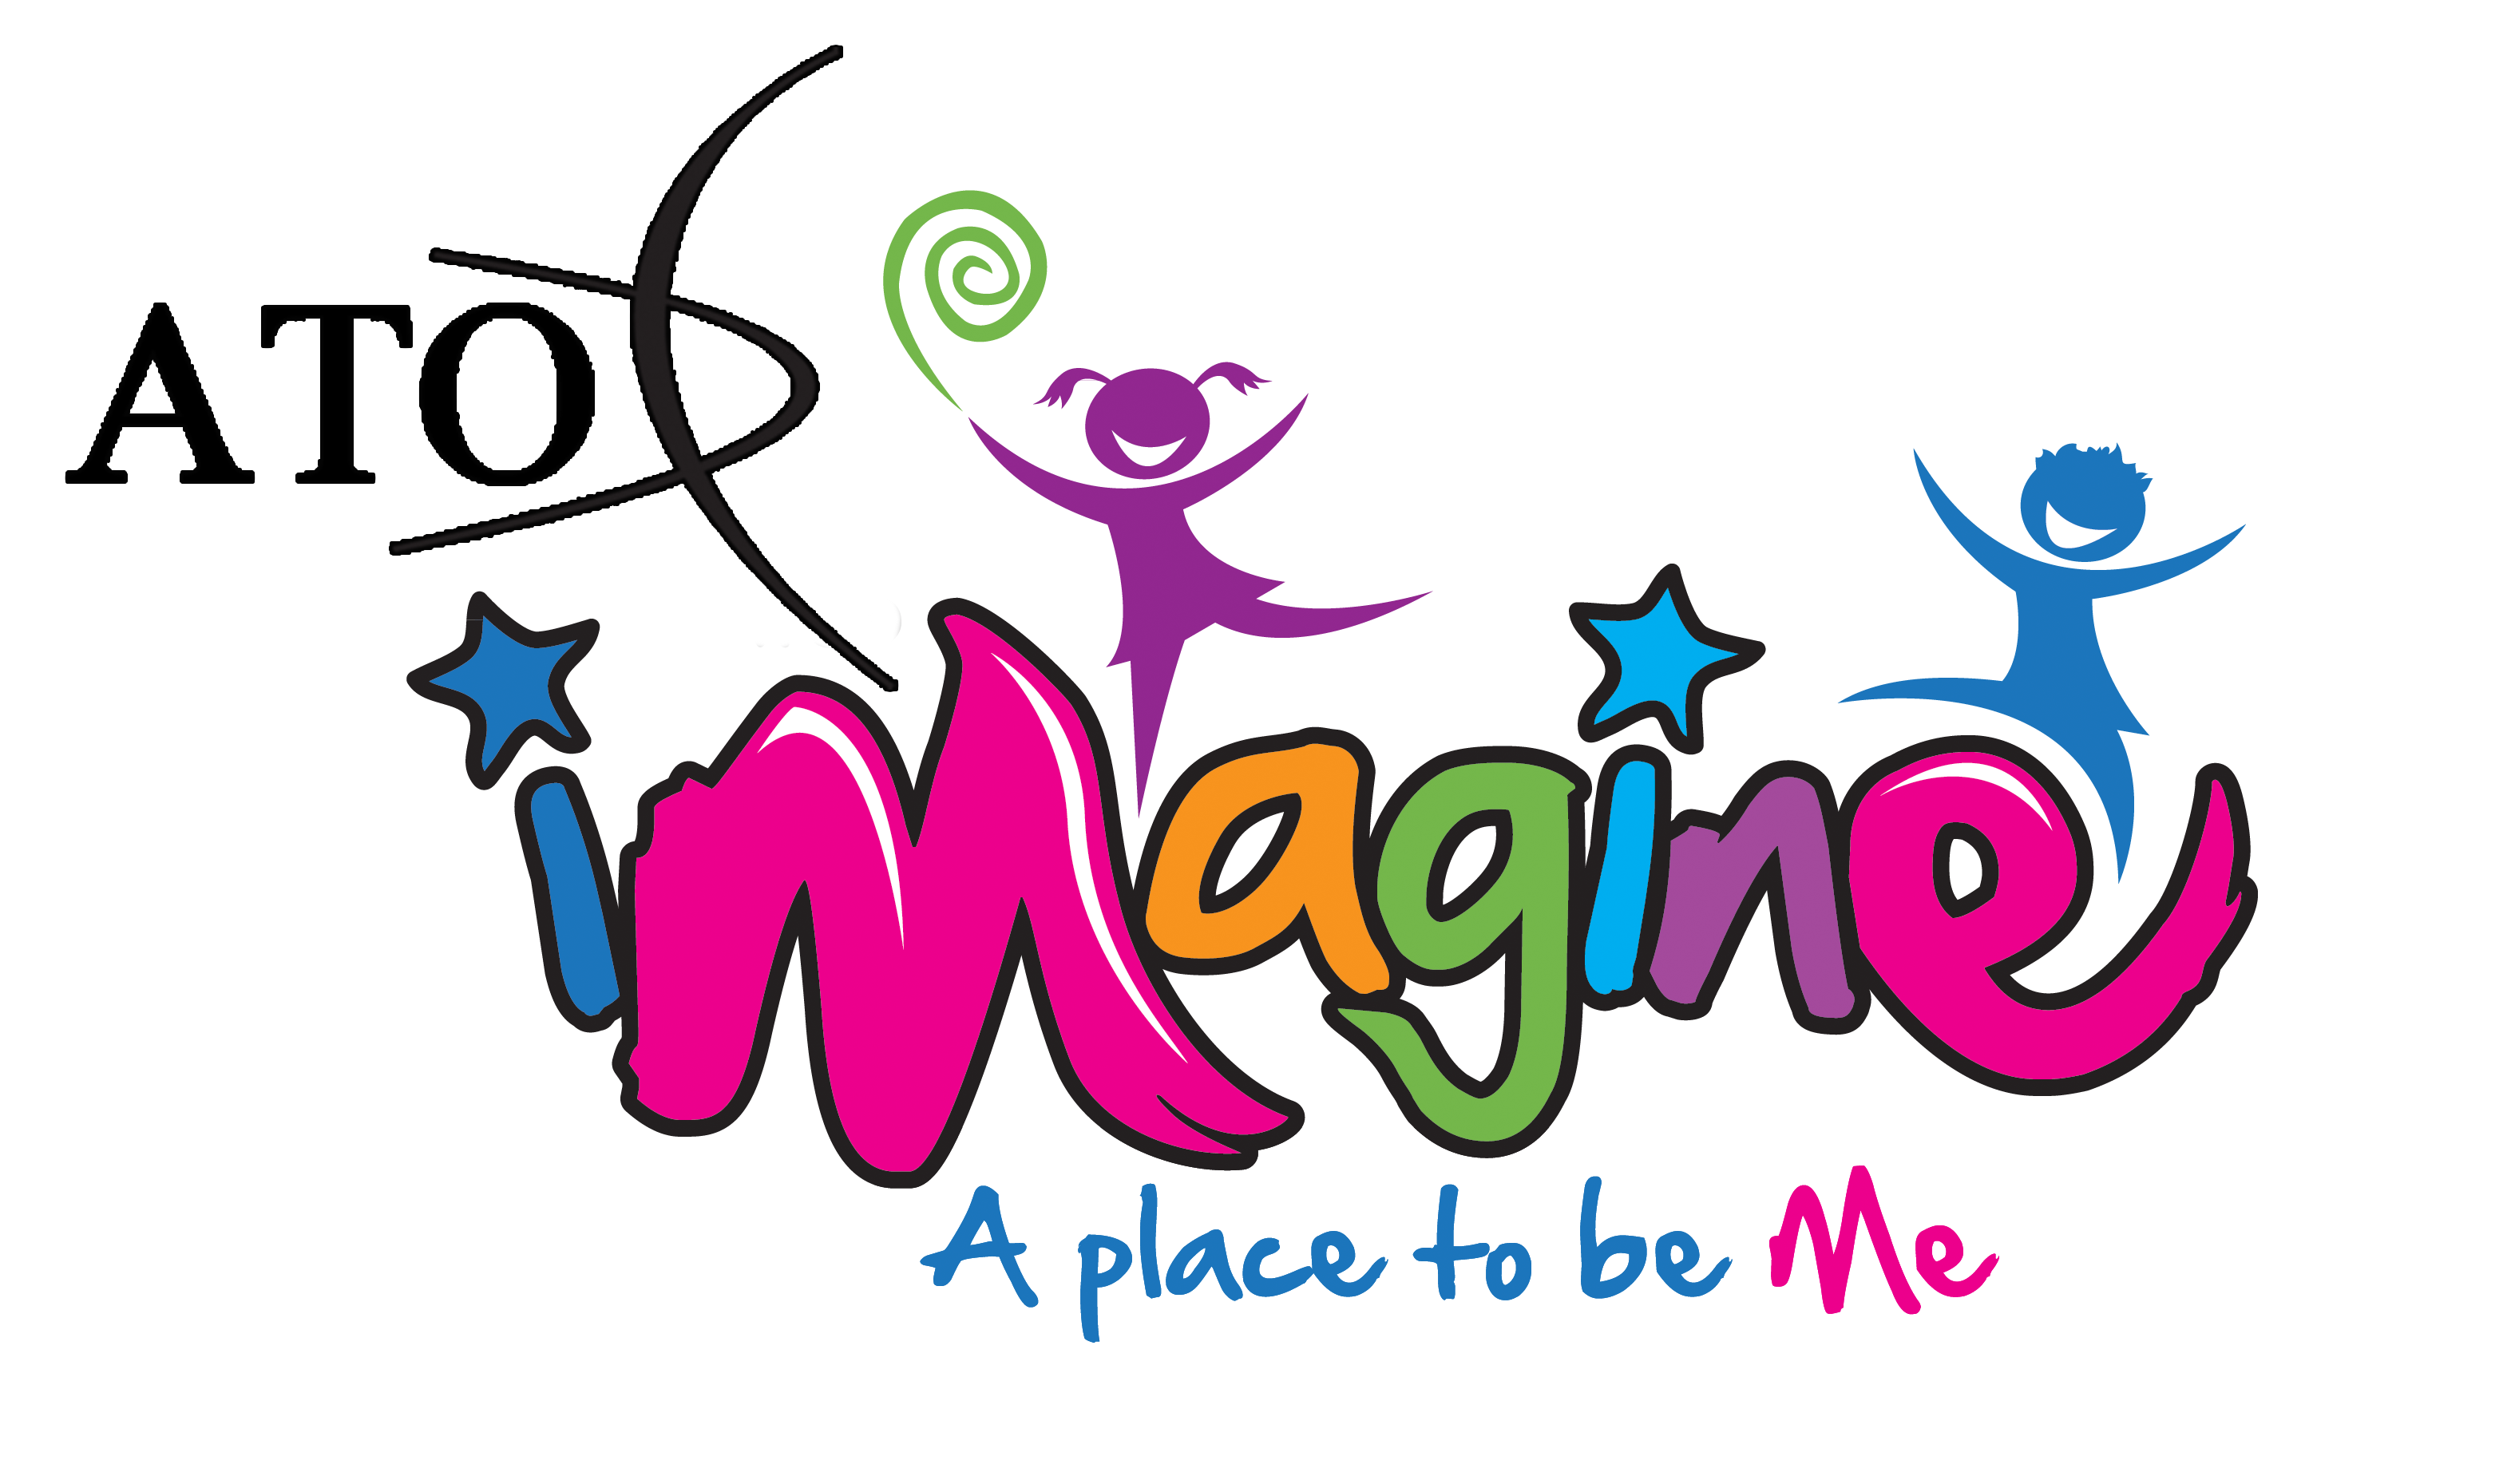 Imagine - for the under 5's